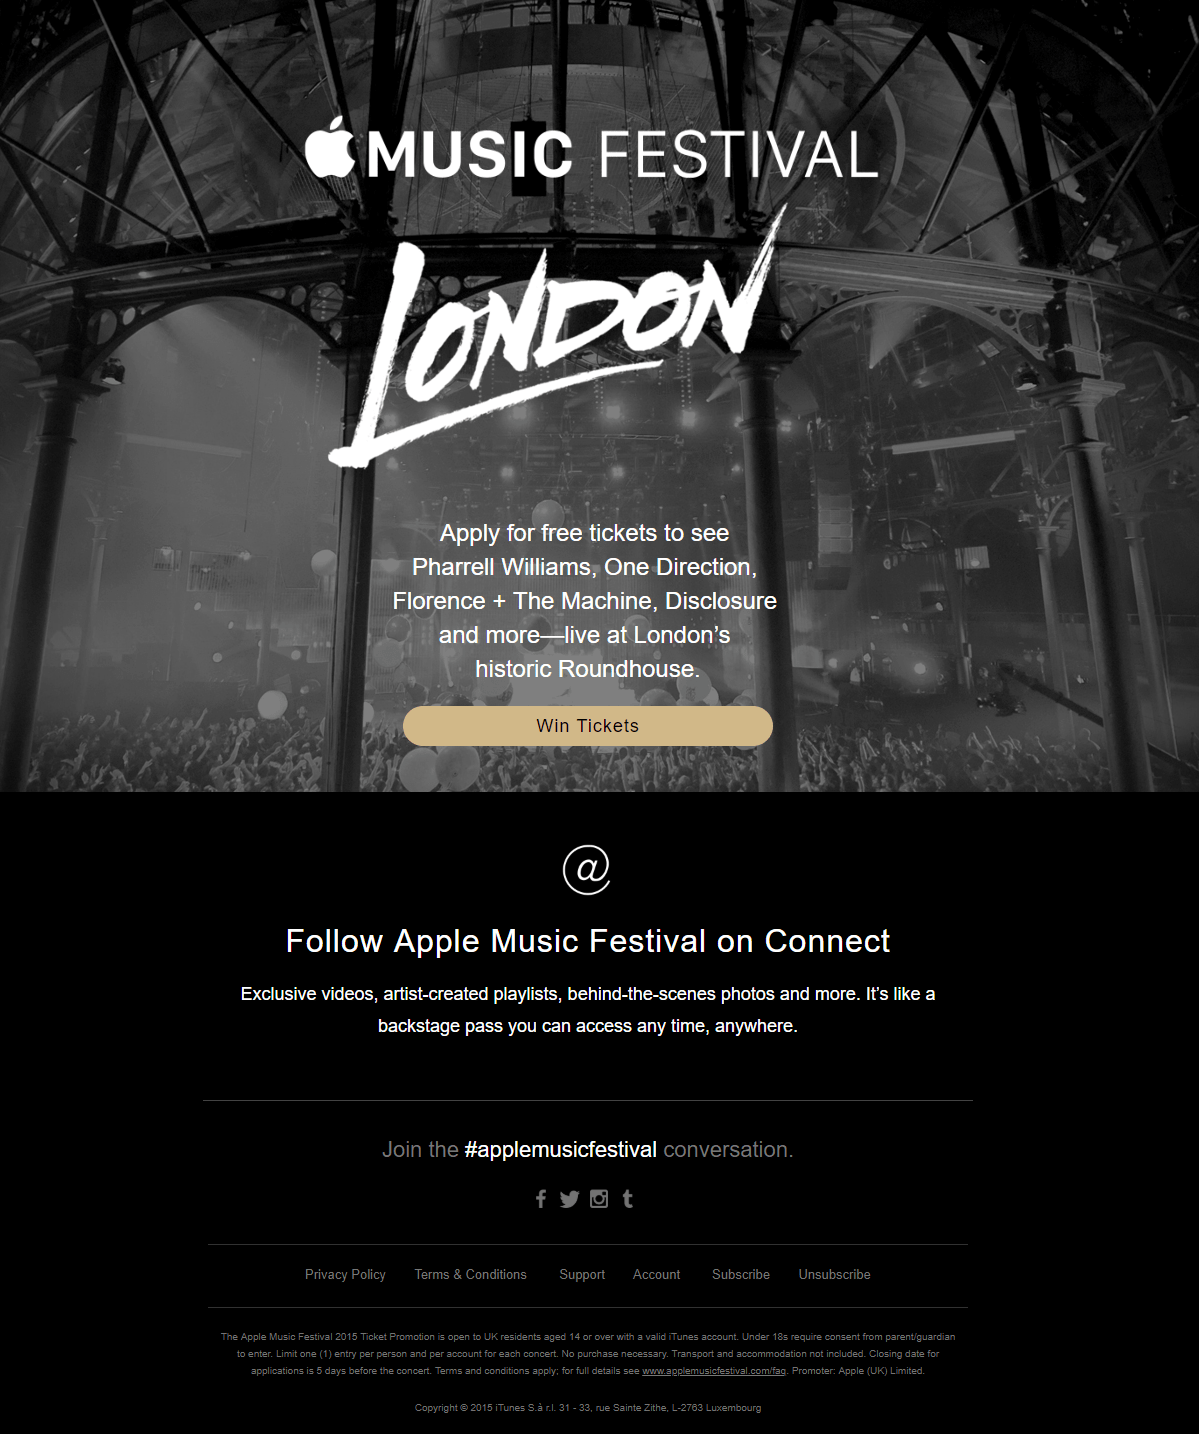 Apple Music Festival giveaway email